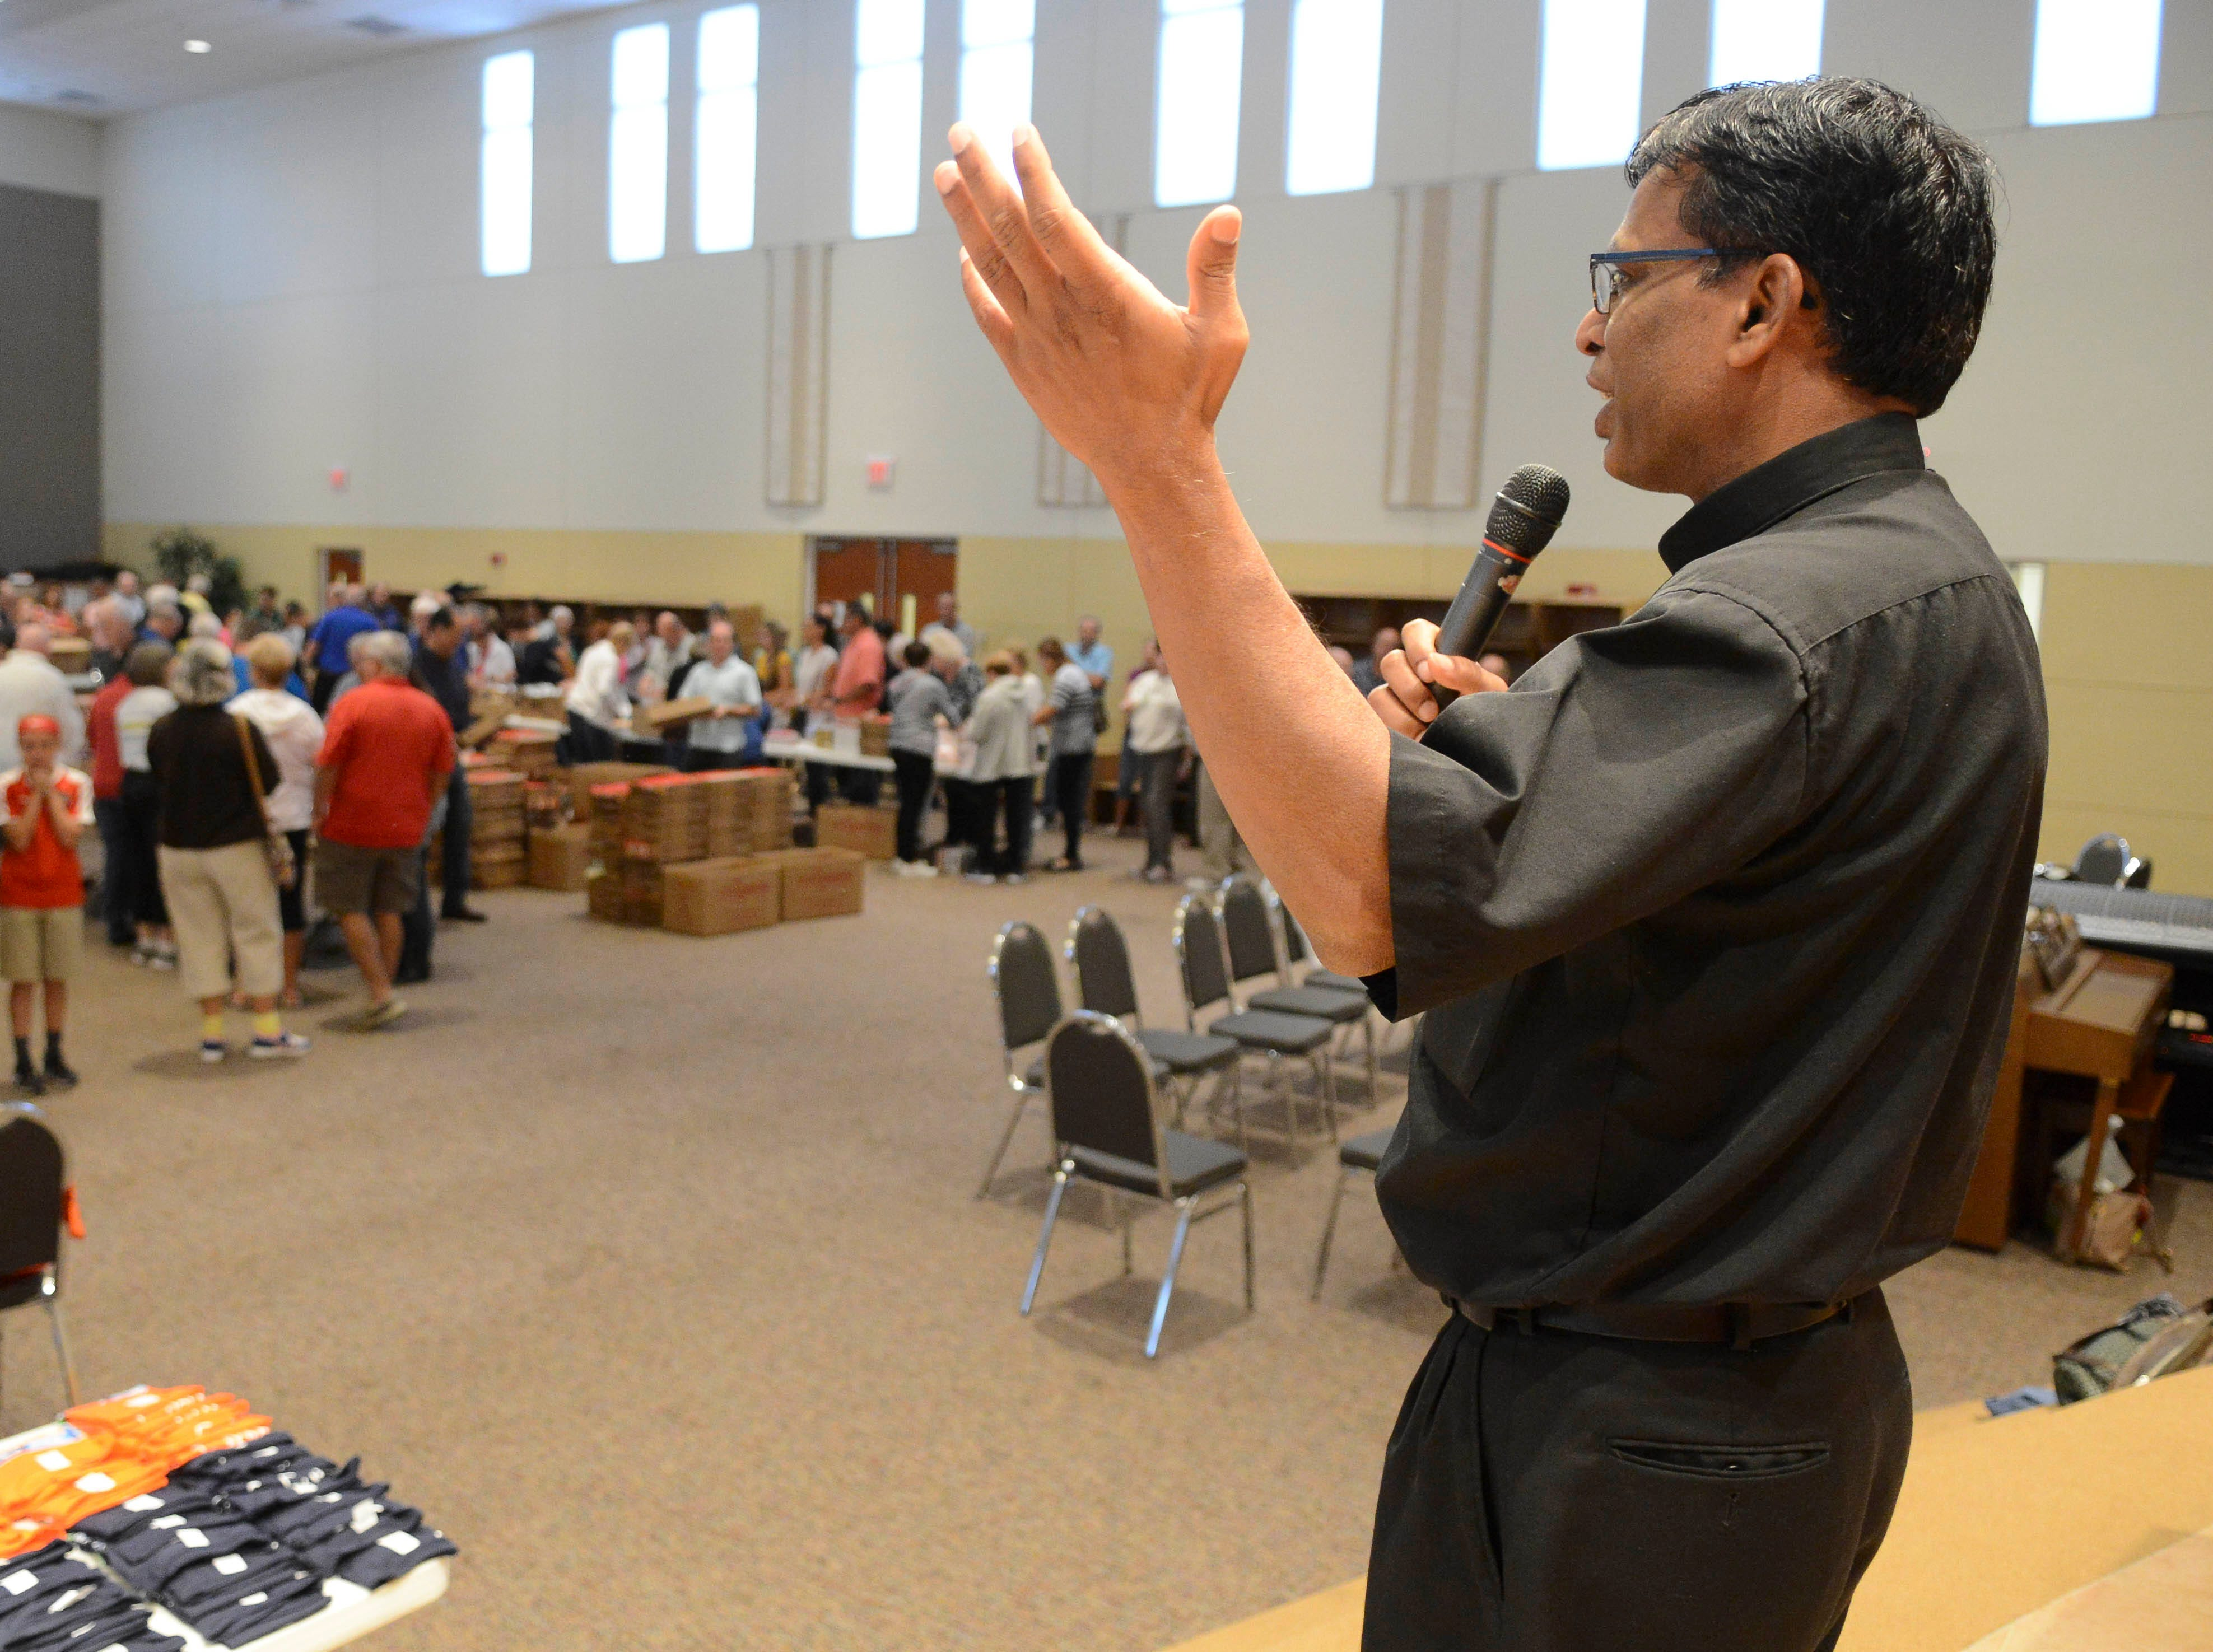 Father John Britto Antony of St. john the Evangelist church in VIera talks to the hundreds of volunteers gathered to help pack lunch kits for The Children's Hunger Project.